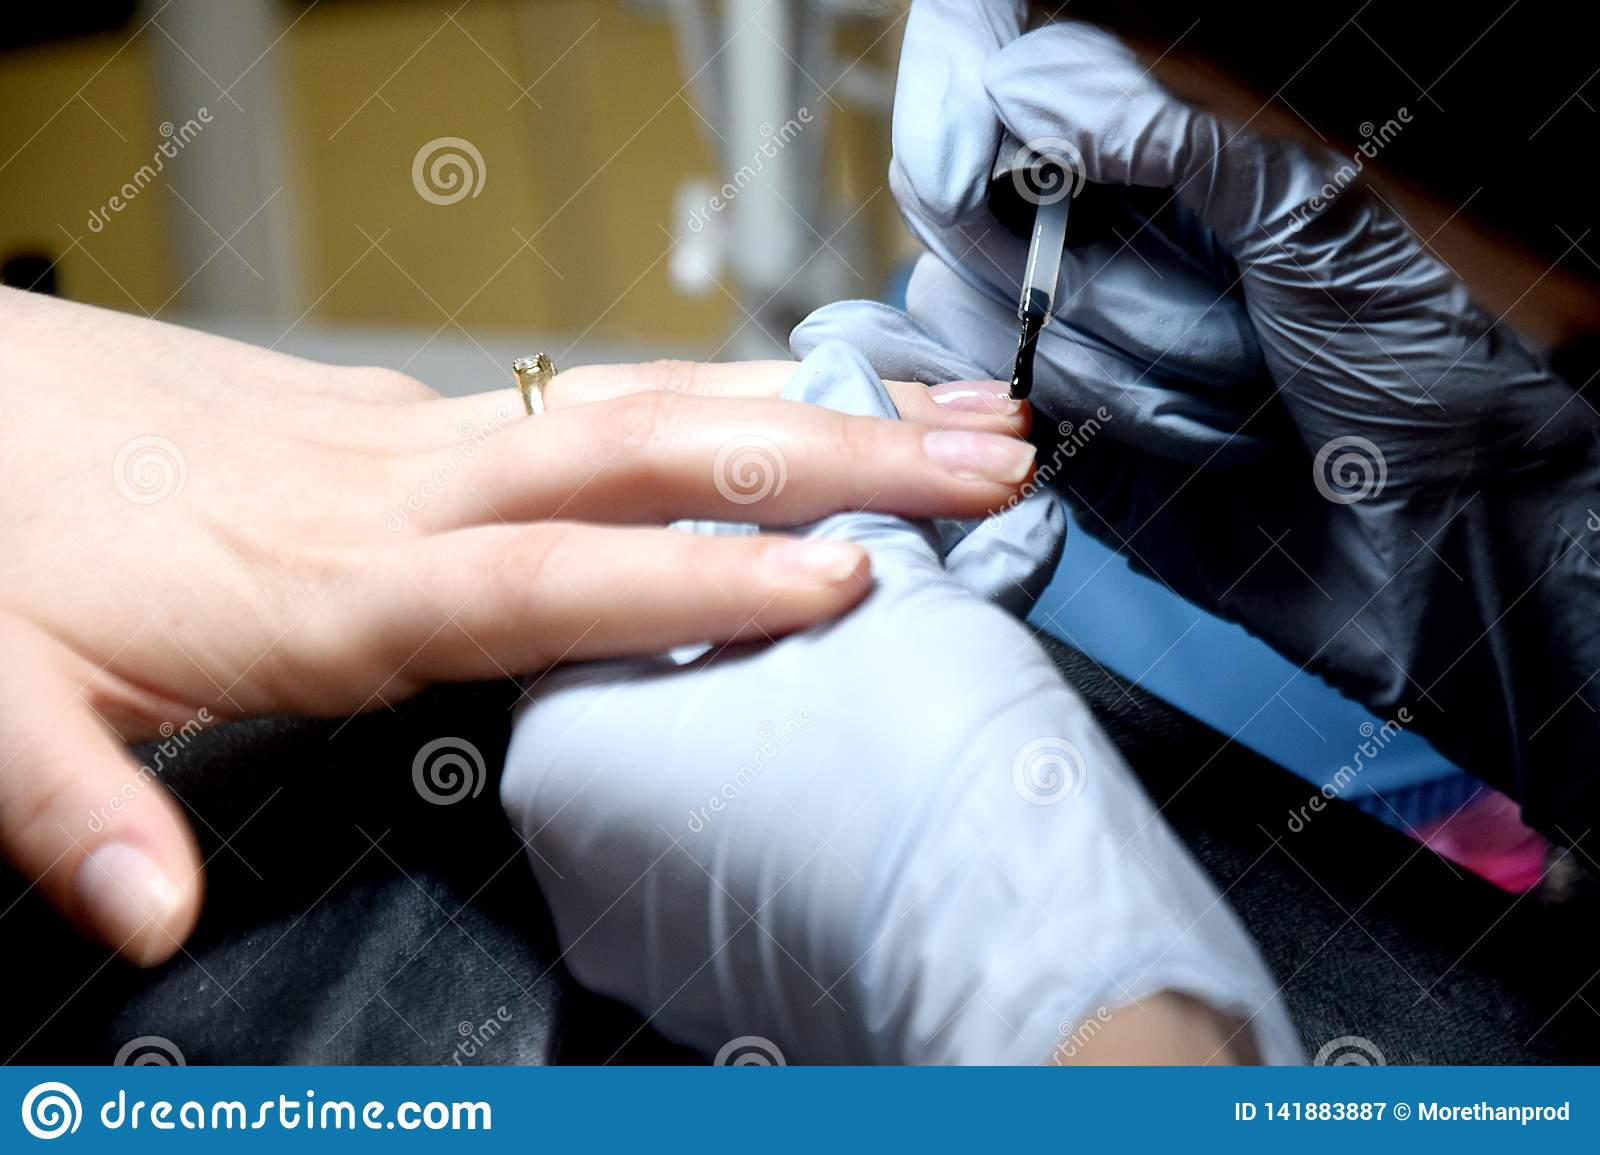 The master makes a manicure. Relaxing day at beauty salon. Manicurist master makes manicure on woman`s hand. Girl paint nails